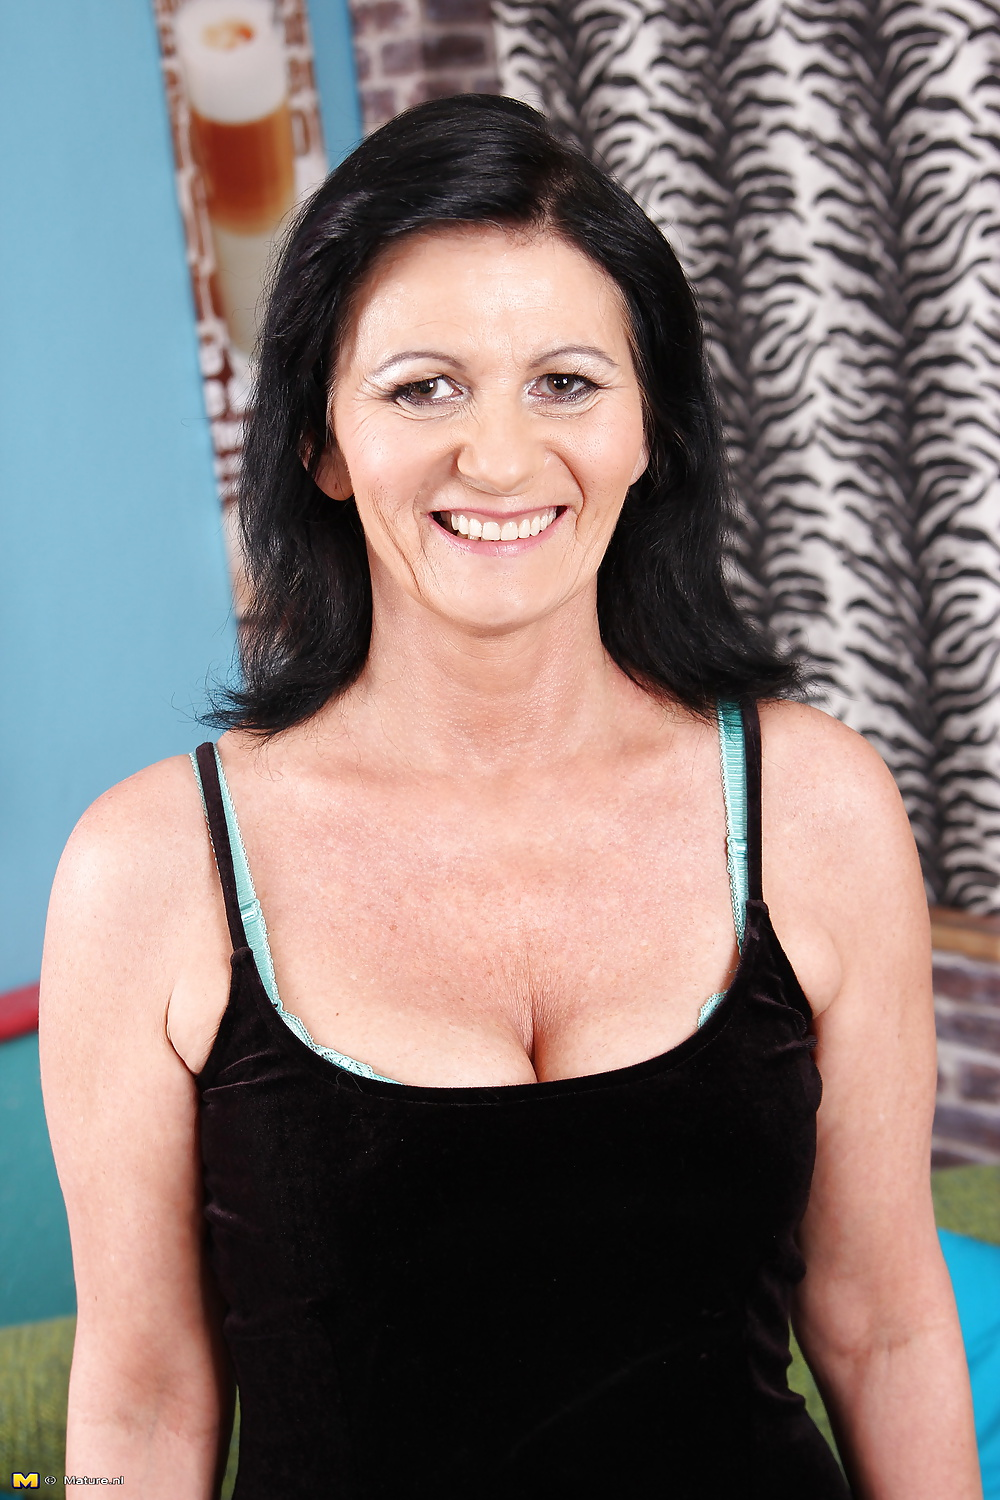 See and save as damn hot milf porn pict